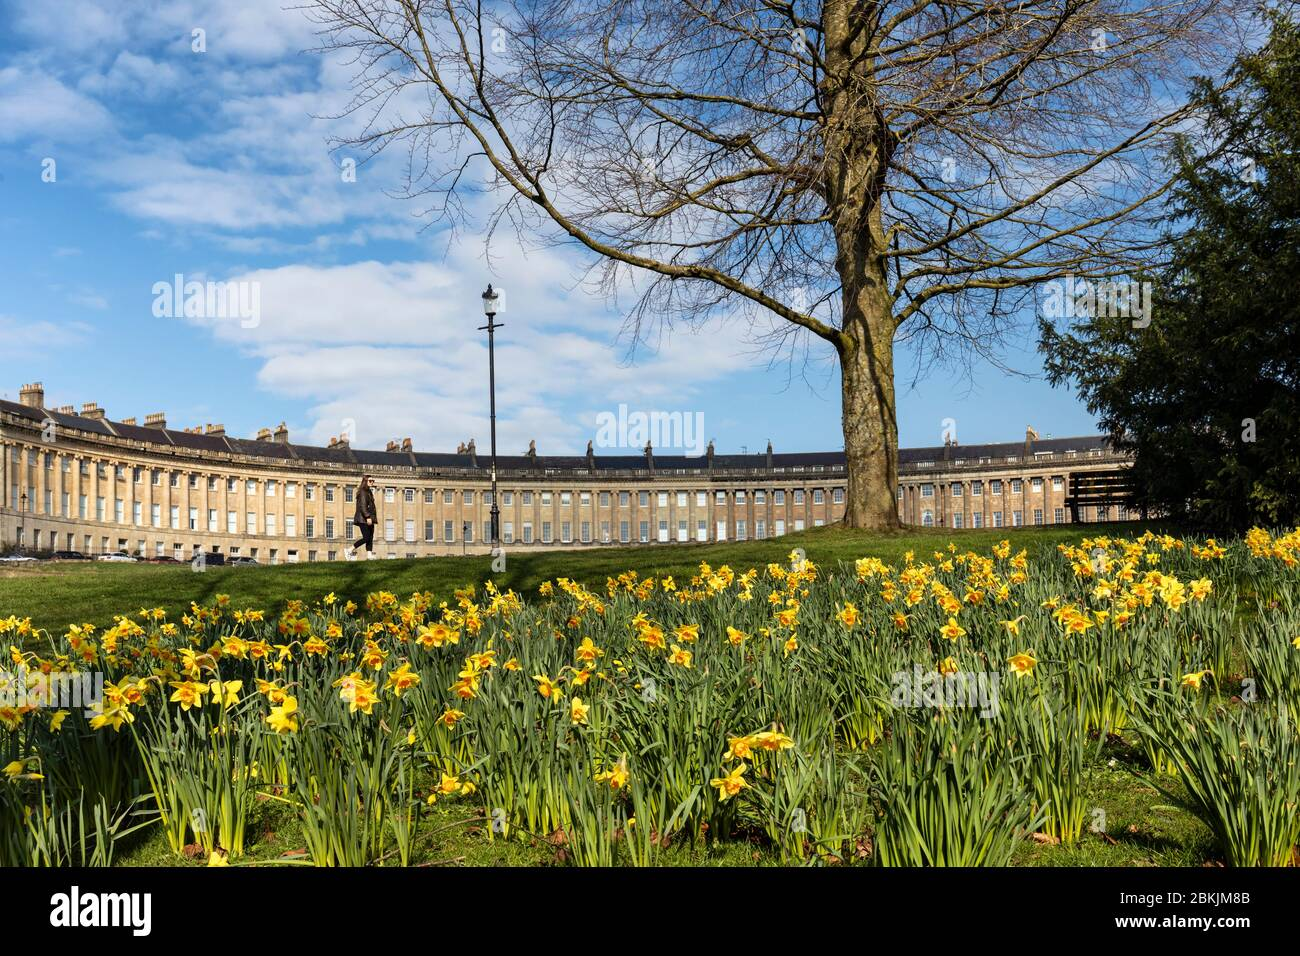 Spring Daffodils in Royal Victoria Park, Bath, with the Royal Crescent in the background, England, UK Stock Photo